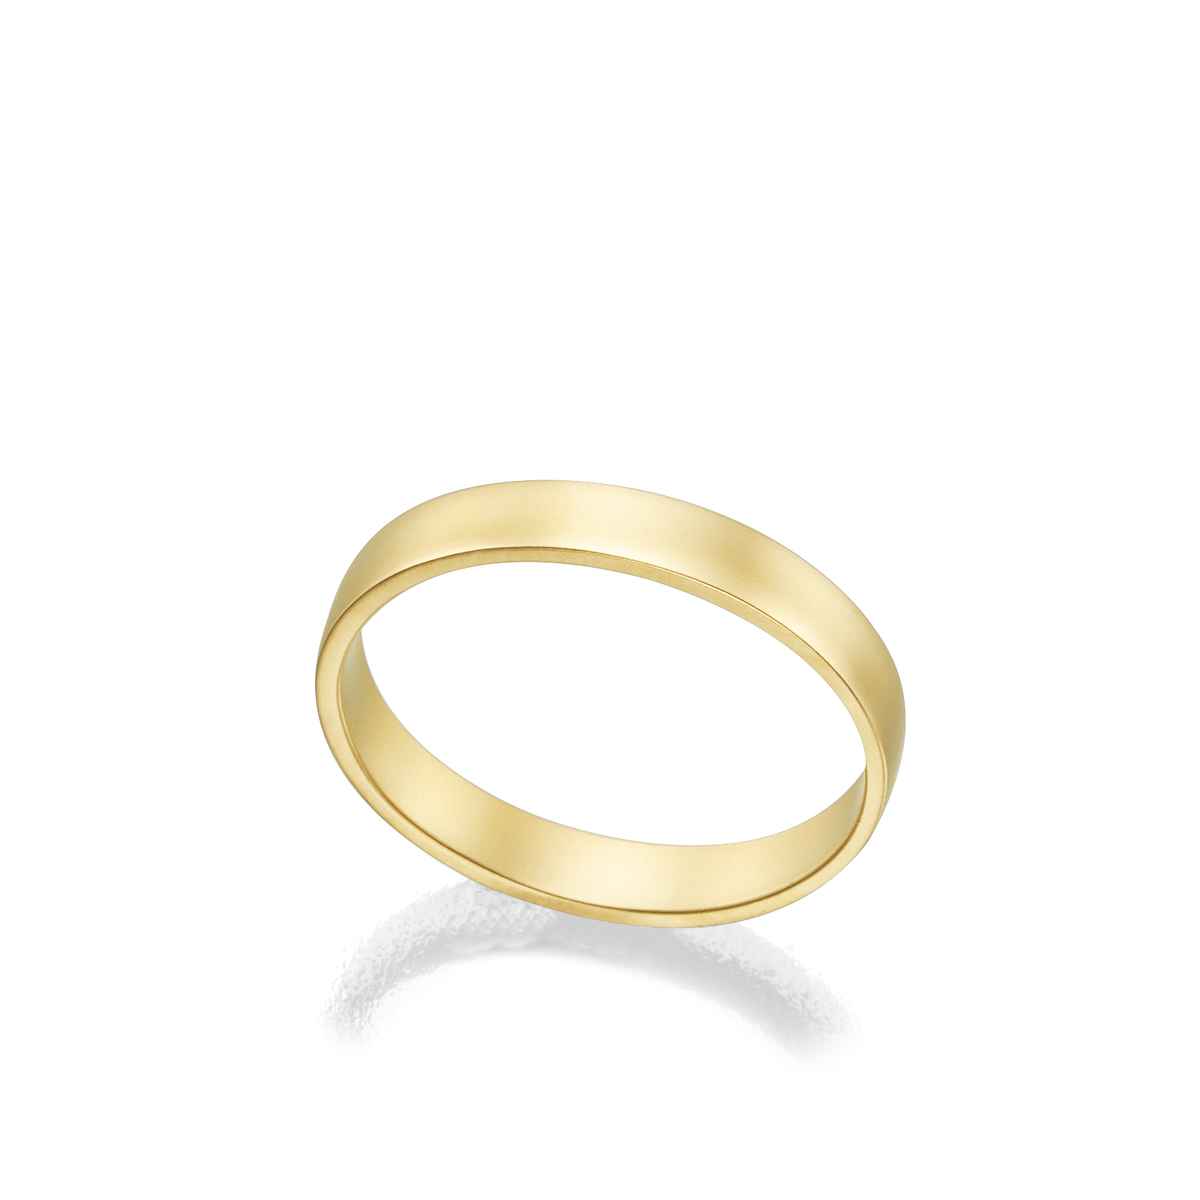 3 mm wide stright profile gold ring